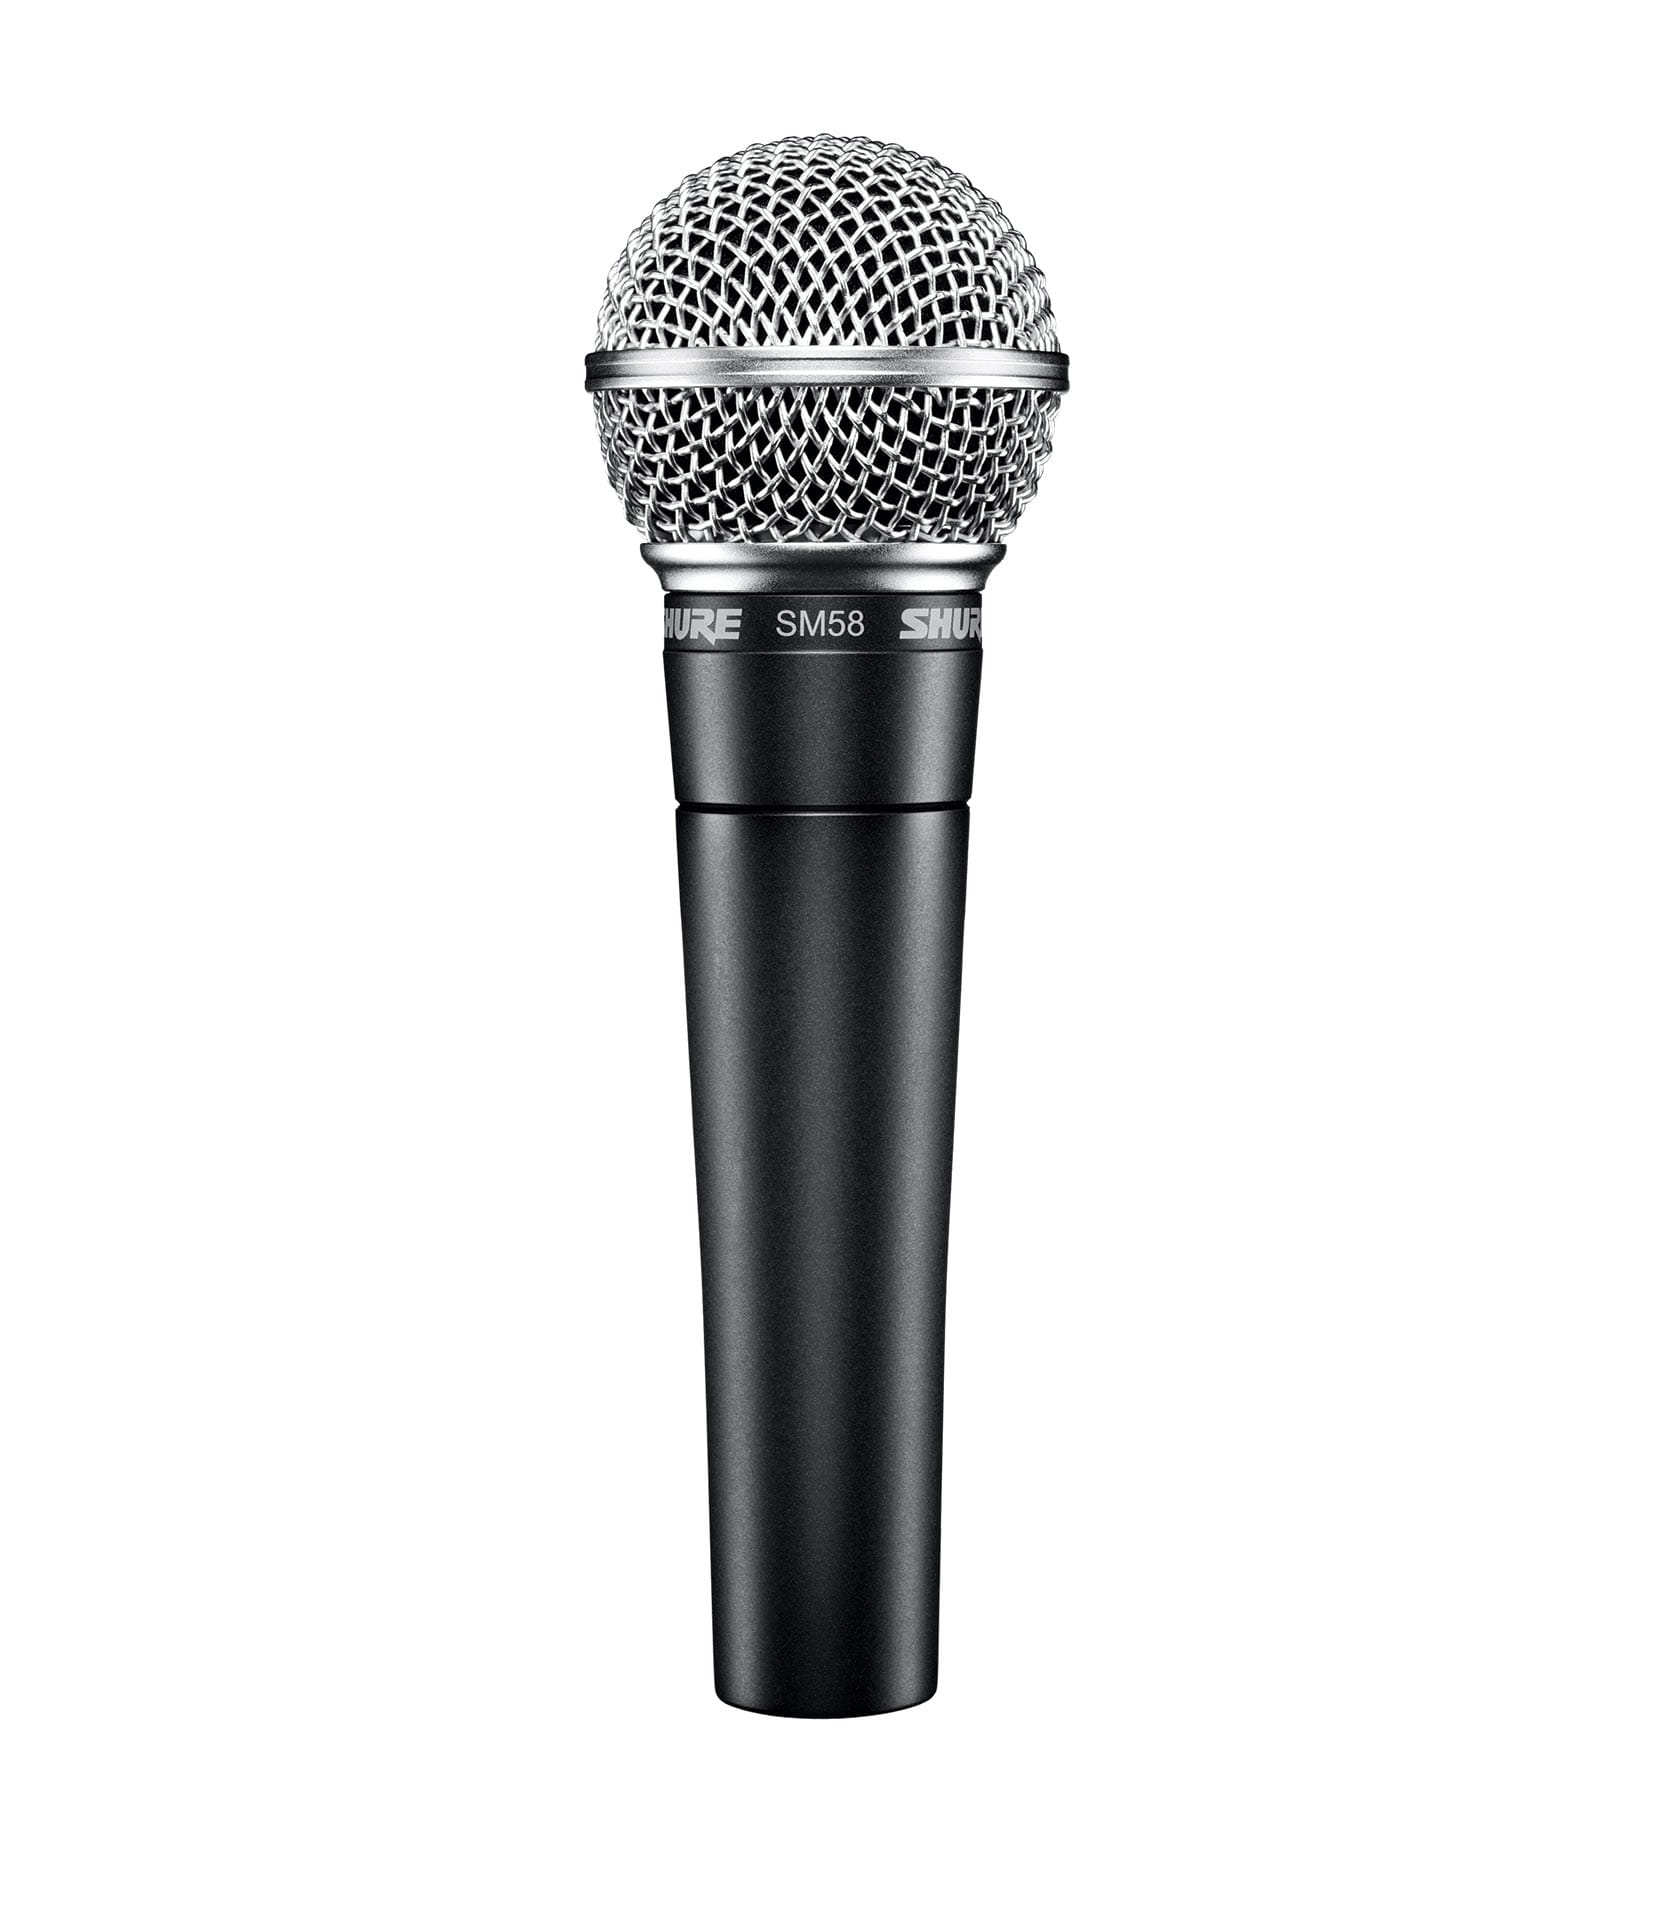 SM58 LCE Vocal Microphone